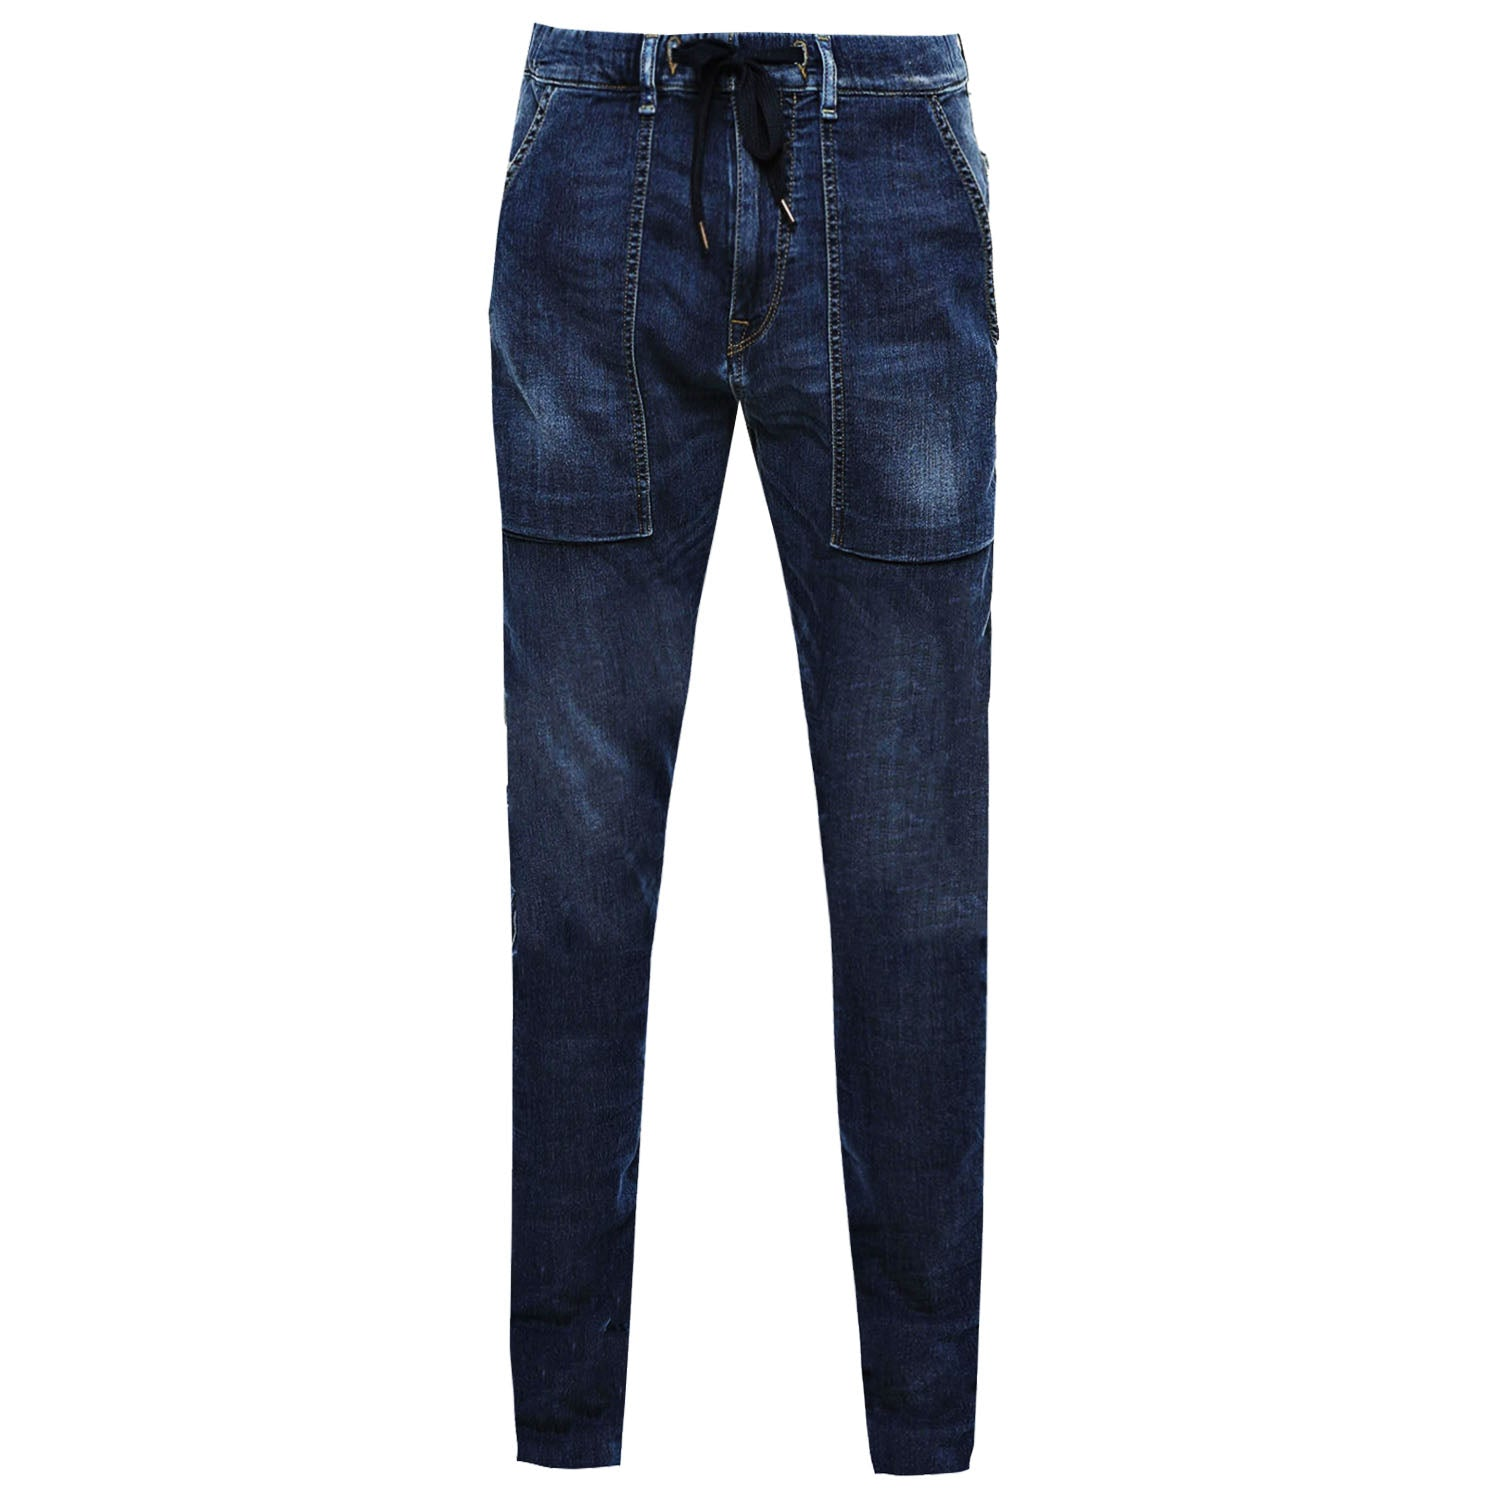 Guess IZAC Tapered Blue Denim Jeans